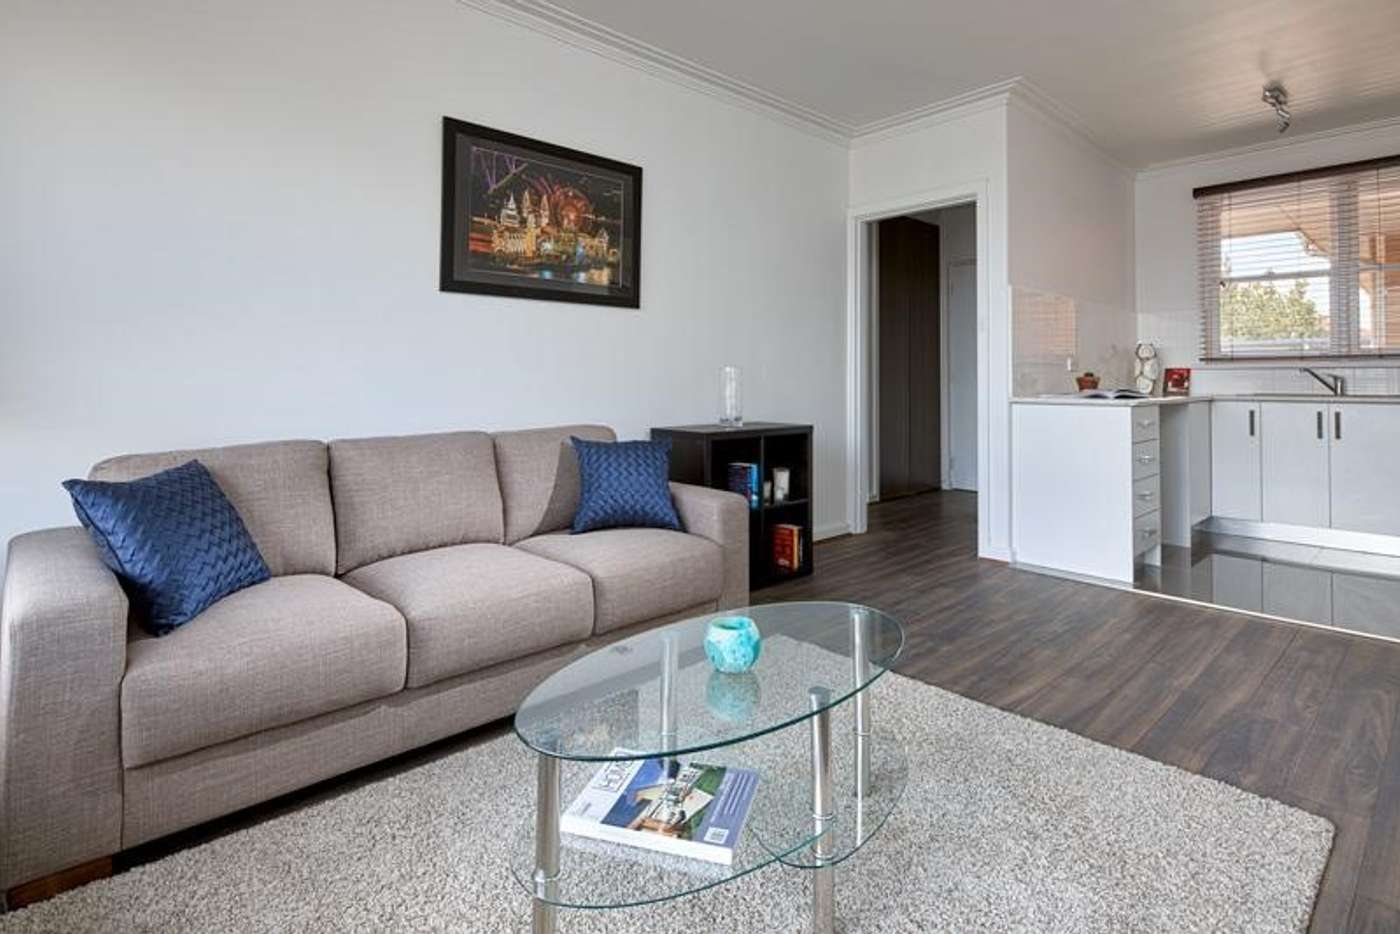 Main view of Homely apartment listing, 15/47 Brighton Road, St Kilda VIC 3182